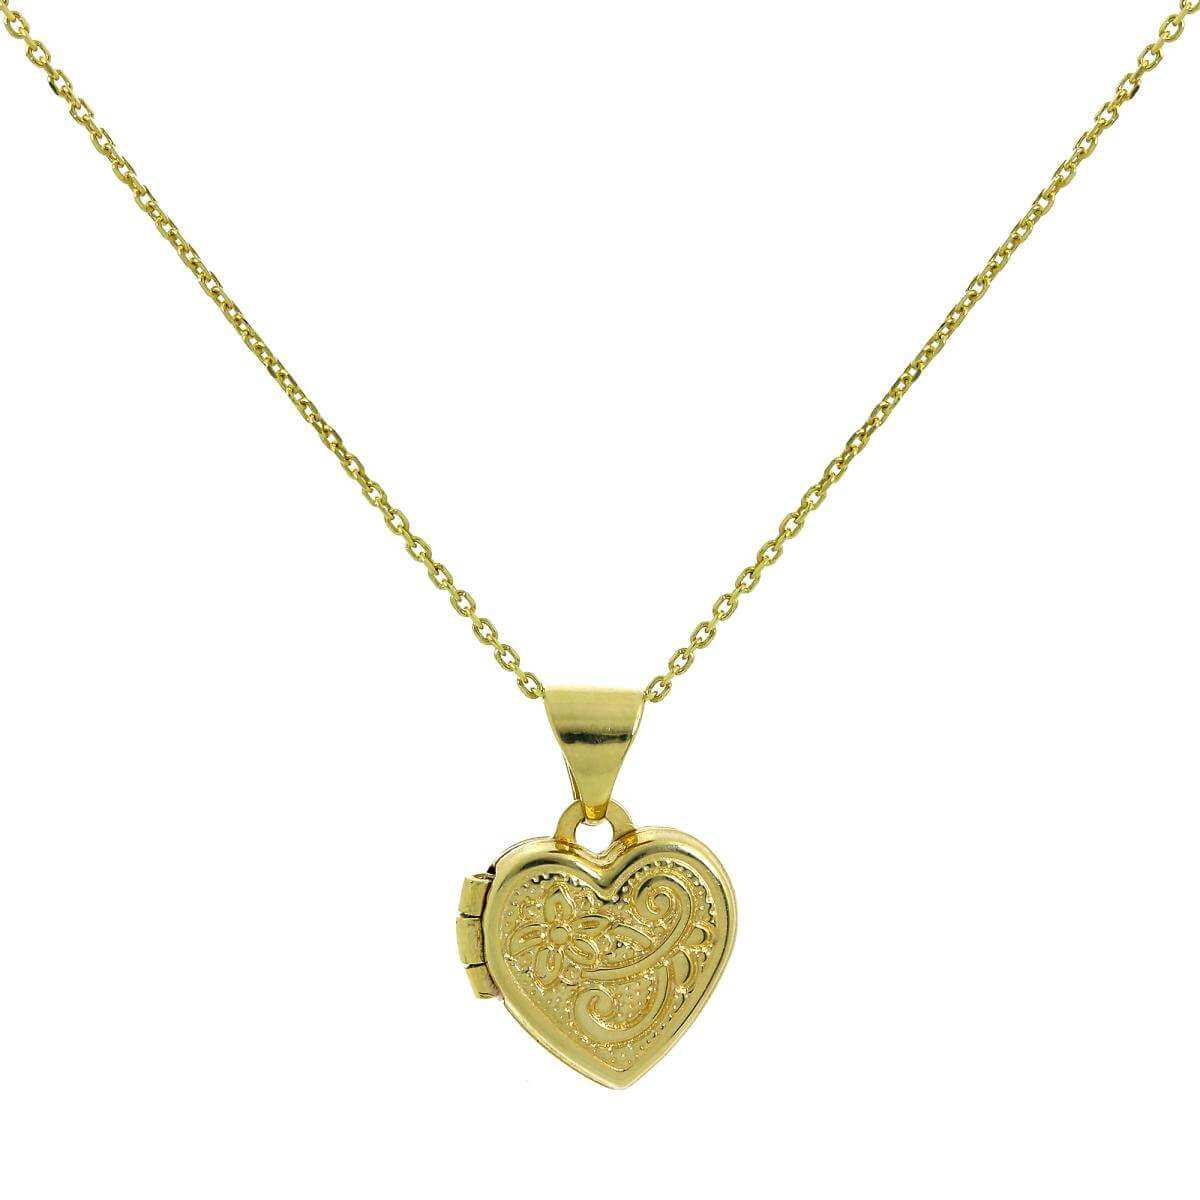 Tiny 9ct Gold Engraved Heart Locket on Chain